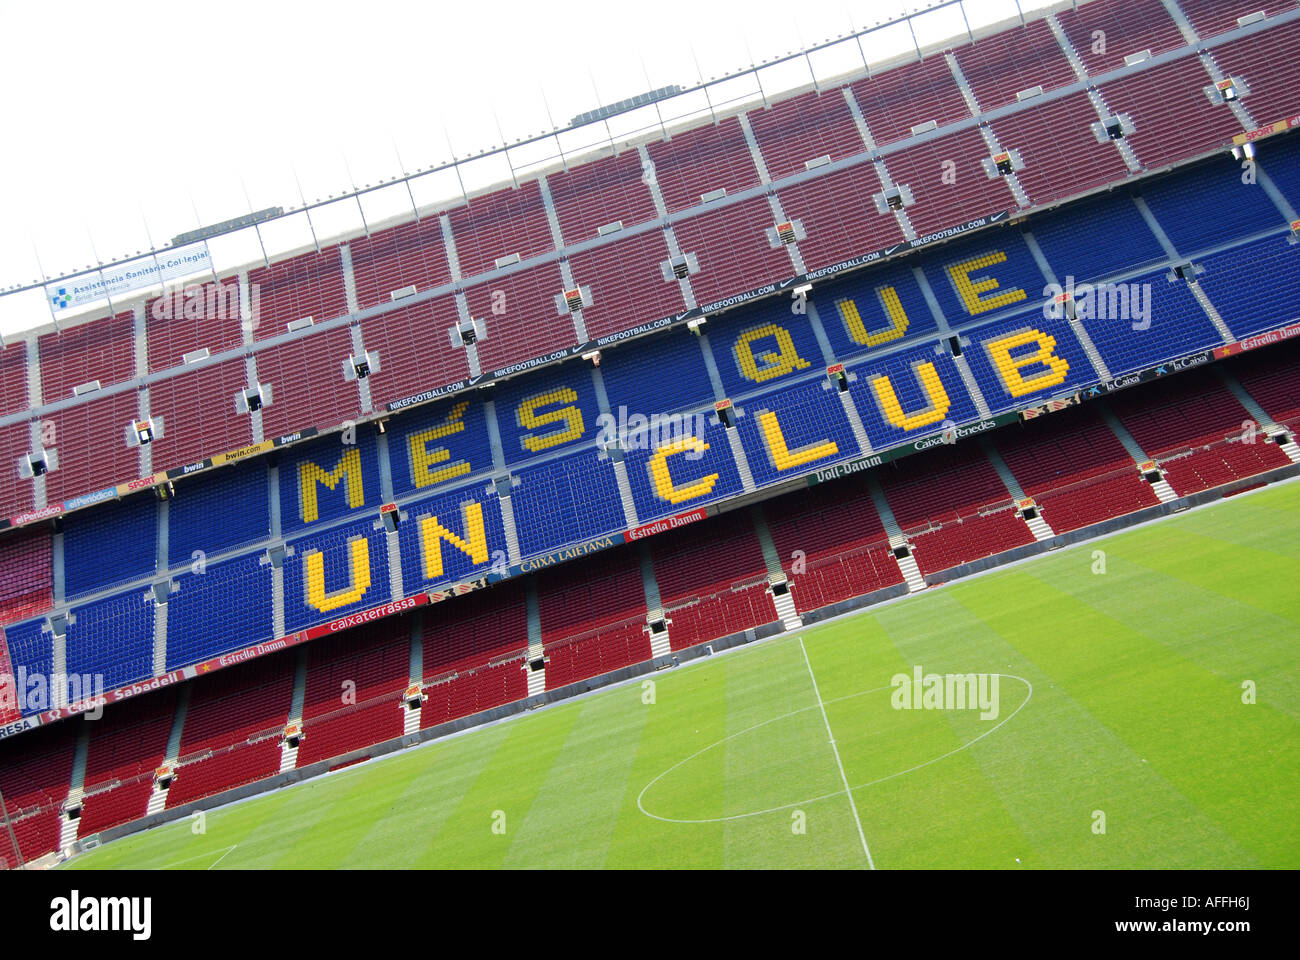 empty seats in stadium of Barcelona football club Spain - Stock Image